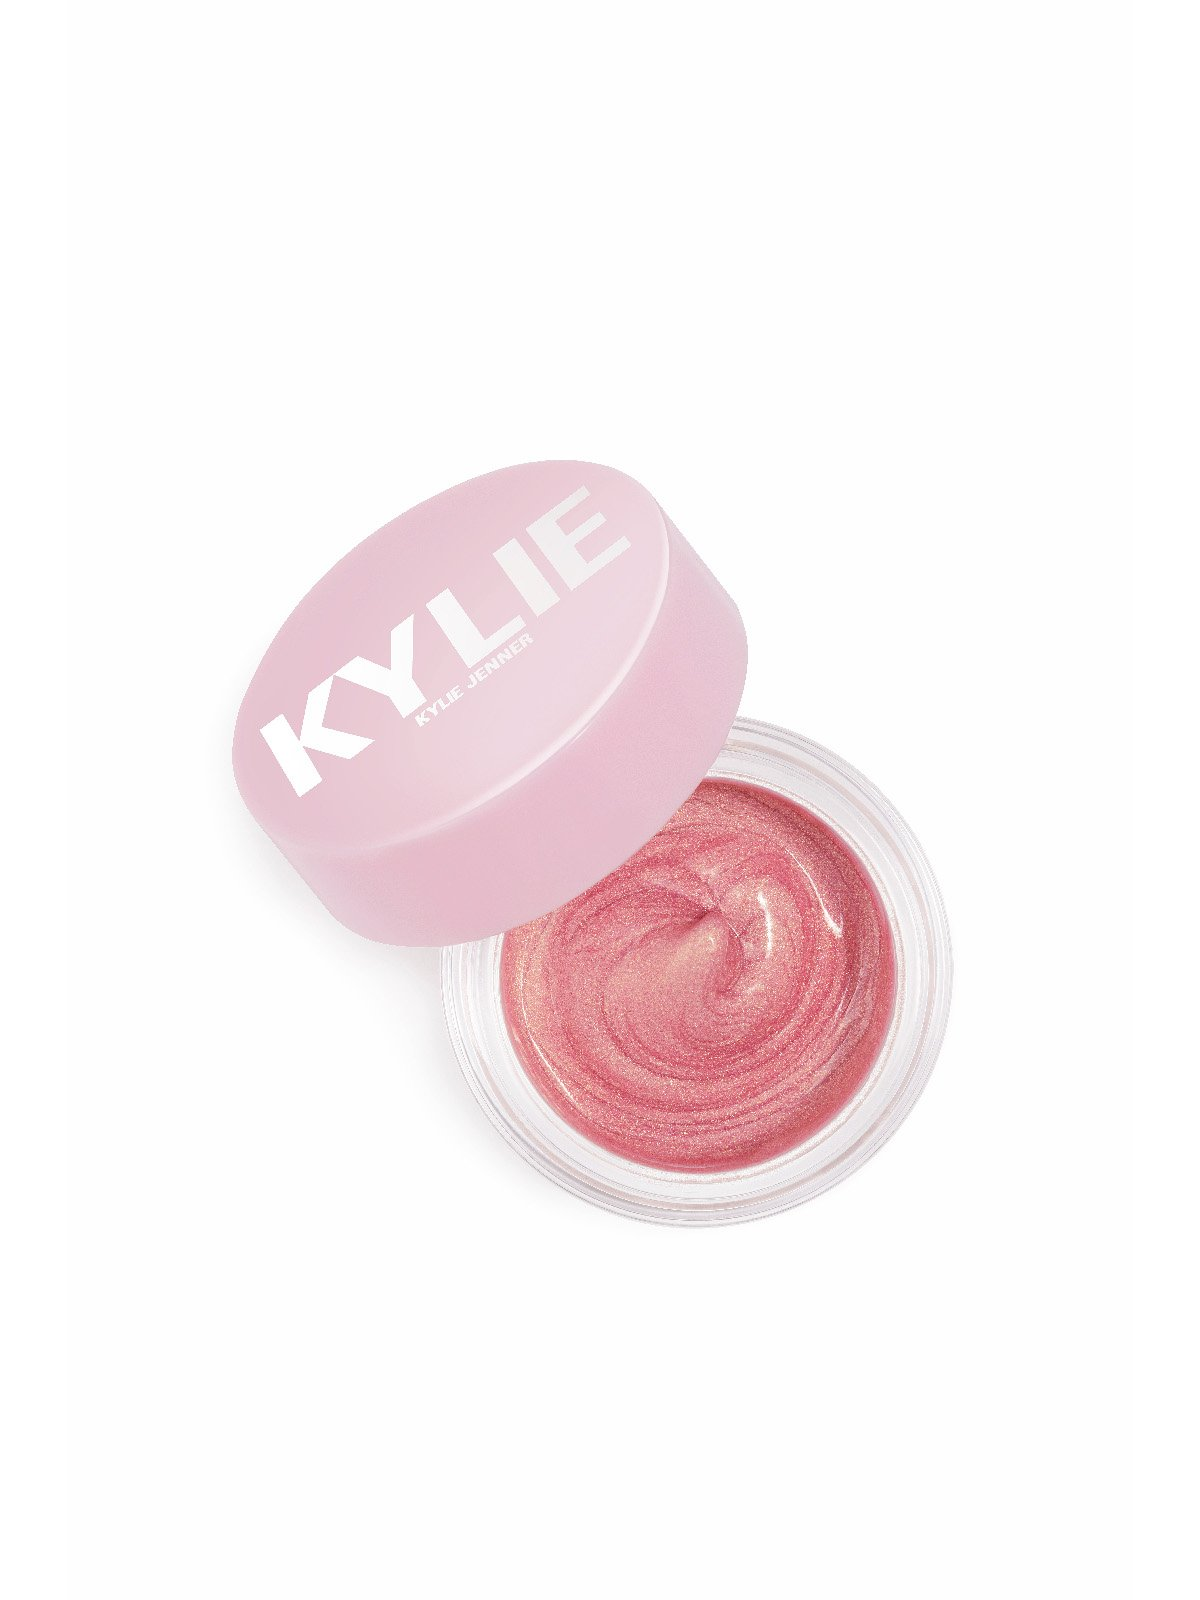 KYLIE COSMETICS - PINK PAPER - JELLY KYLIGHTER